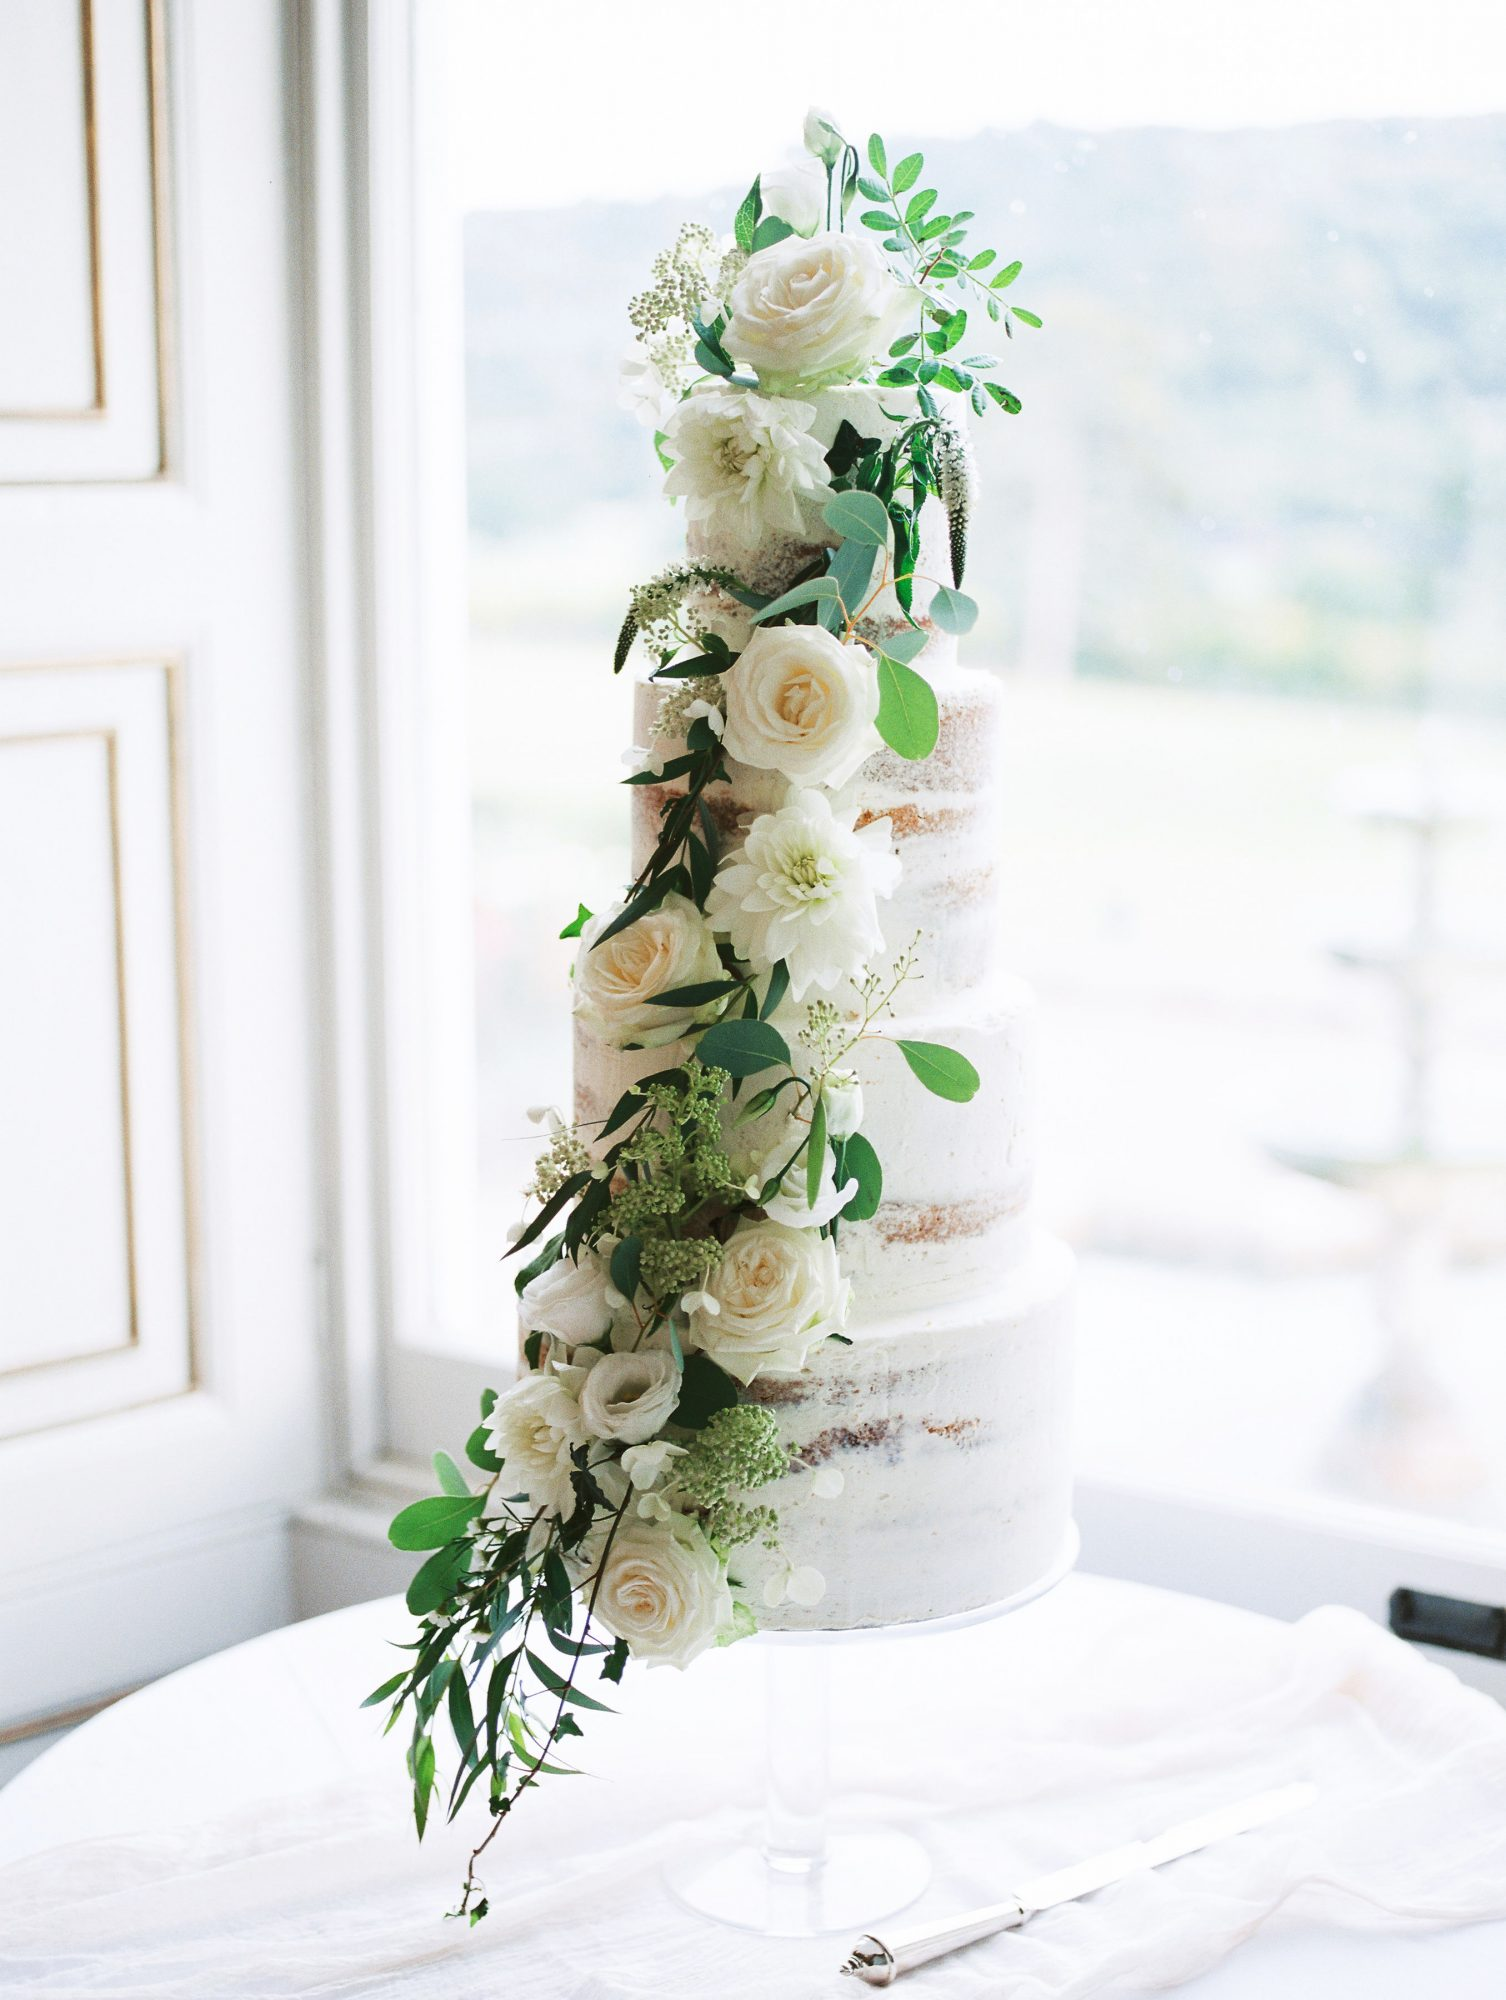 sophie christopher wedding mulit-tiered cake